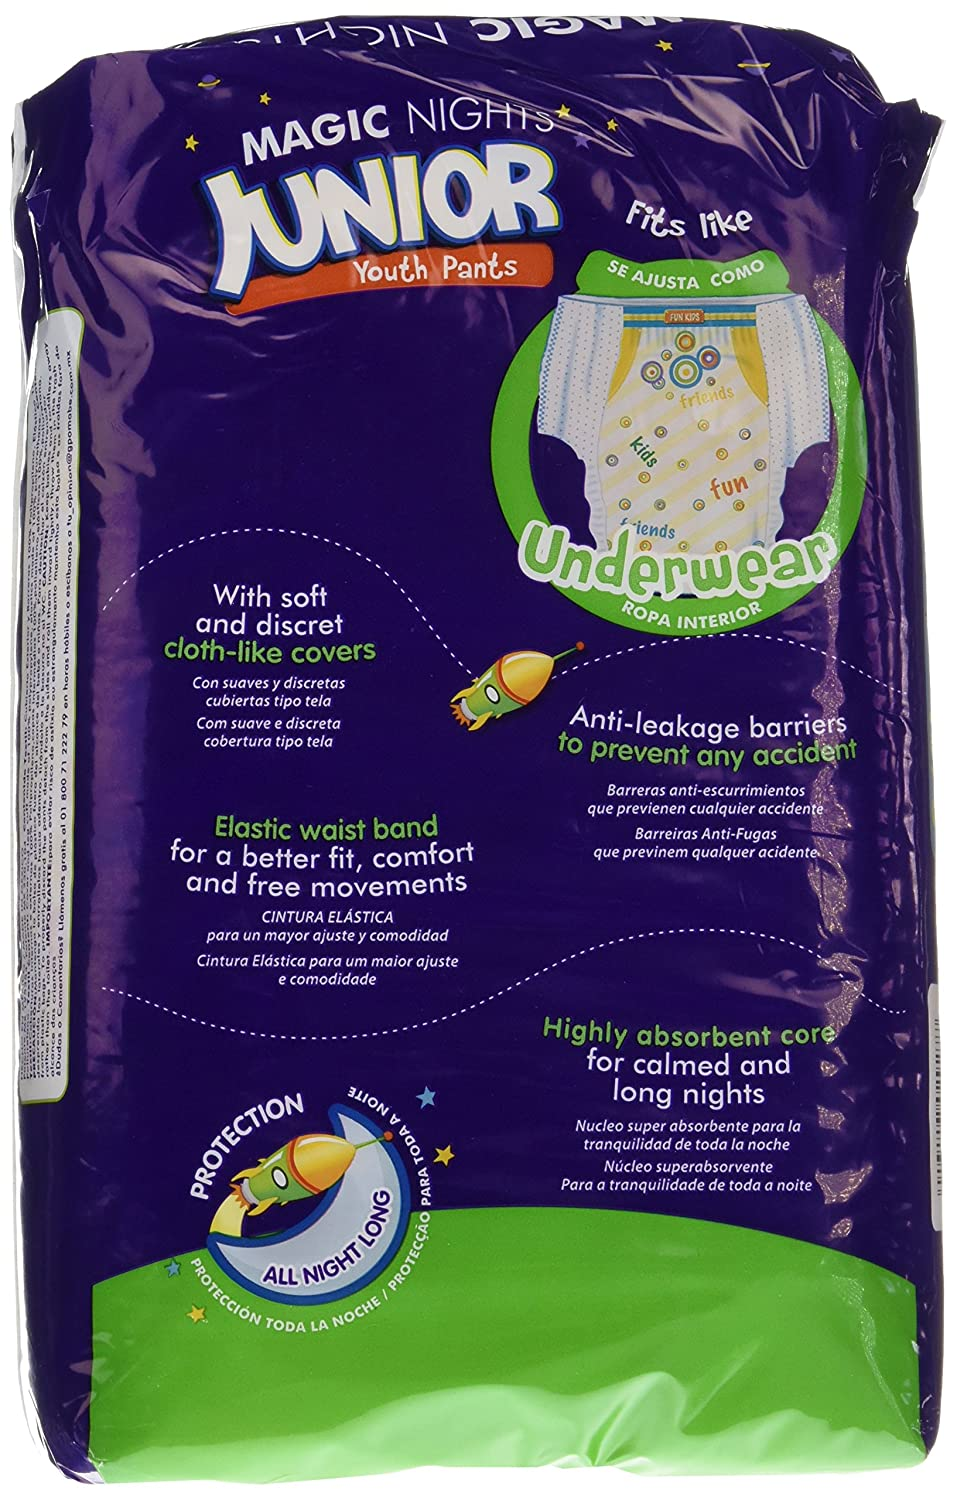 Moltex Magic Nights Youth Pants Bolsa de Braguitas de Noche - 12 Braguitas - [pack de 2]: Amazon.es: Salud y cuidado personal